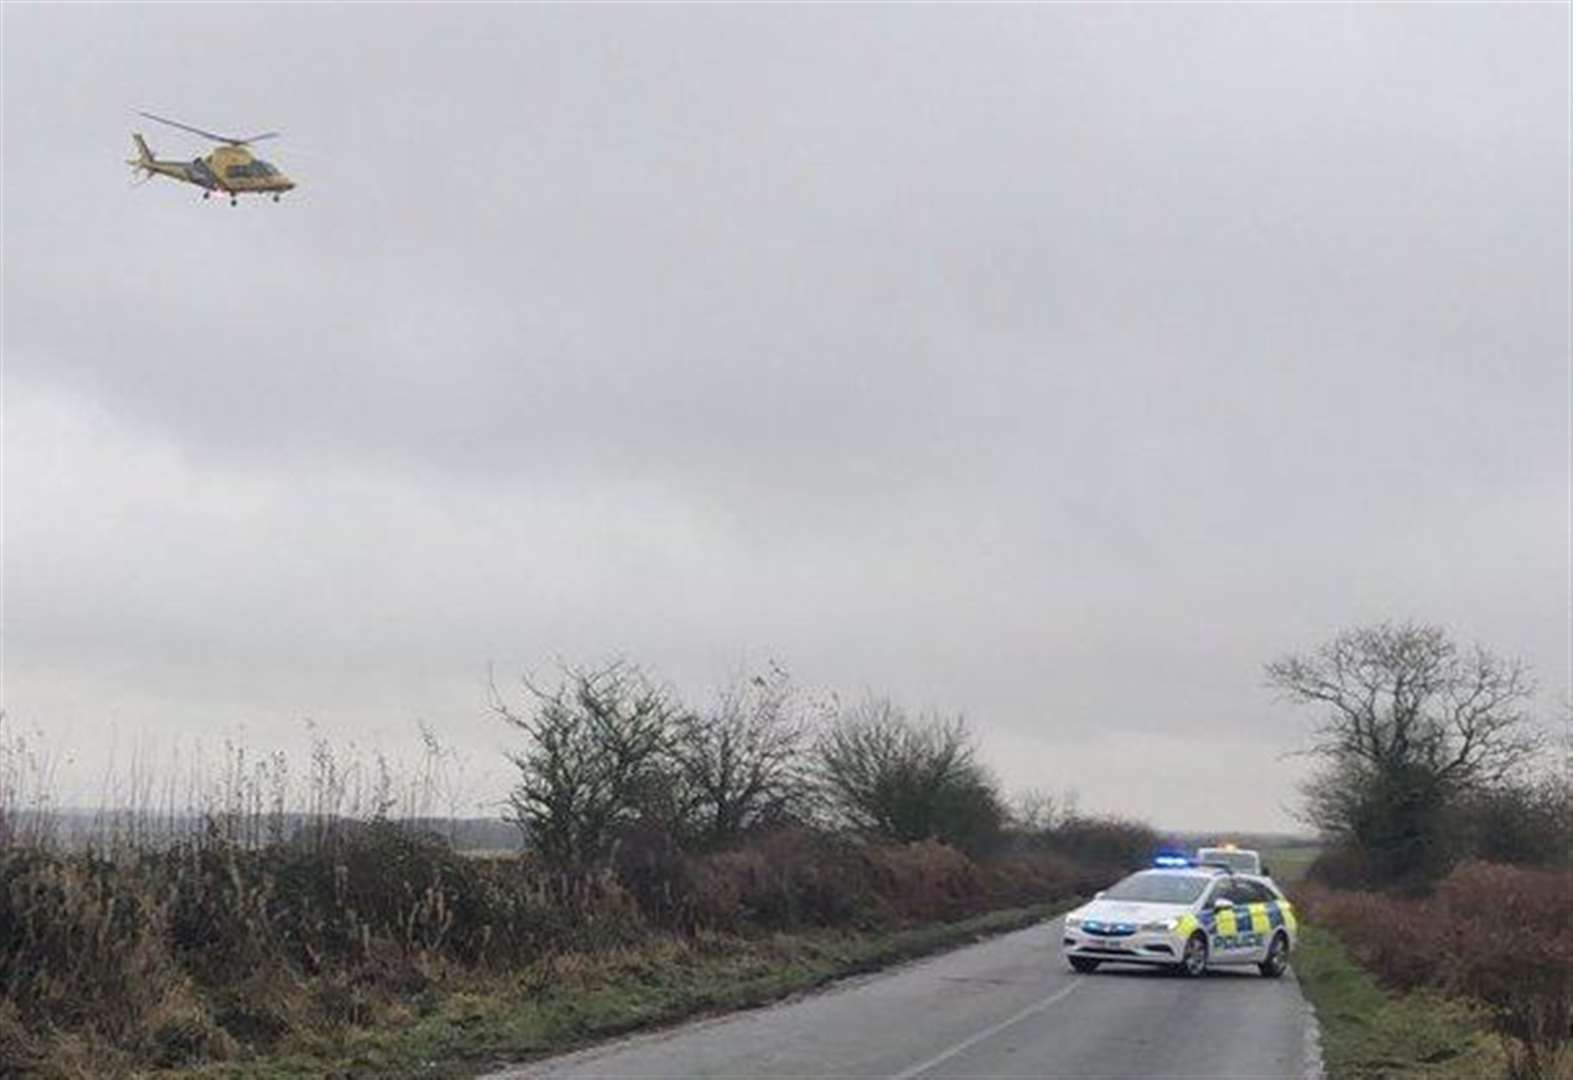 Air ambulance attends 'head-on' collision near Grantham